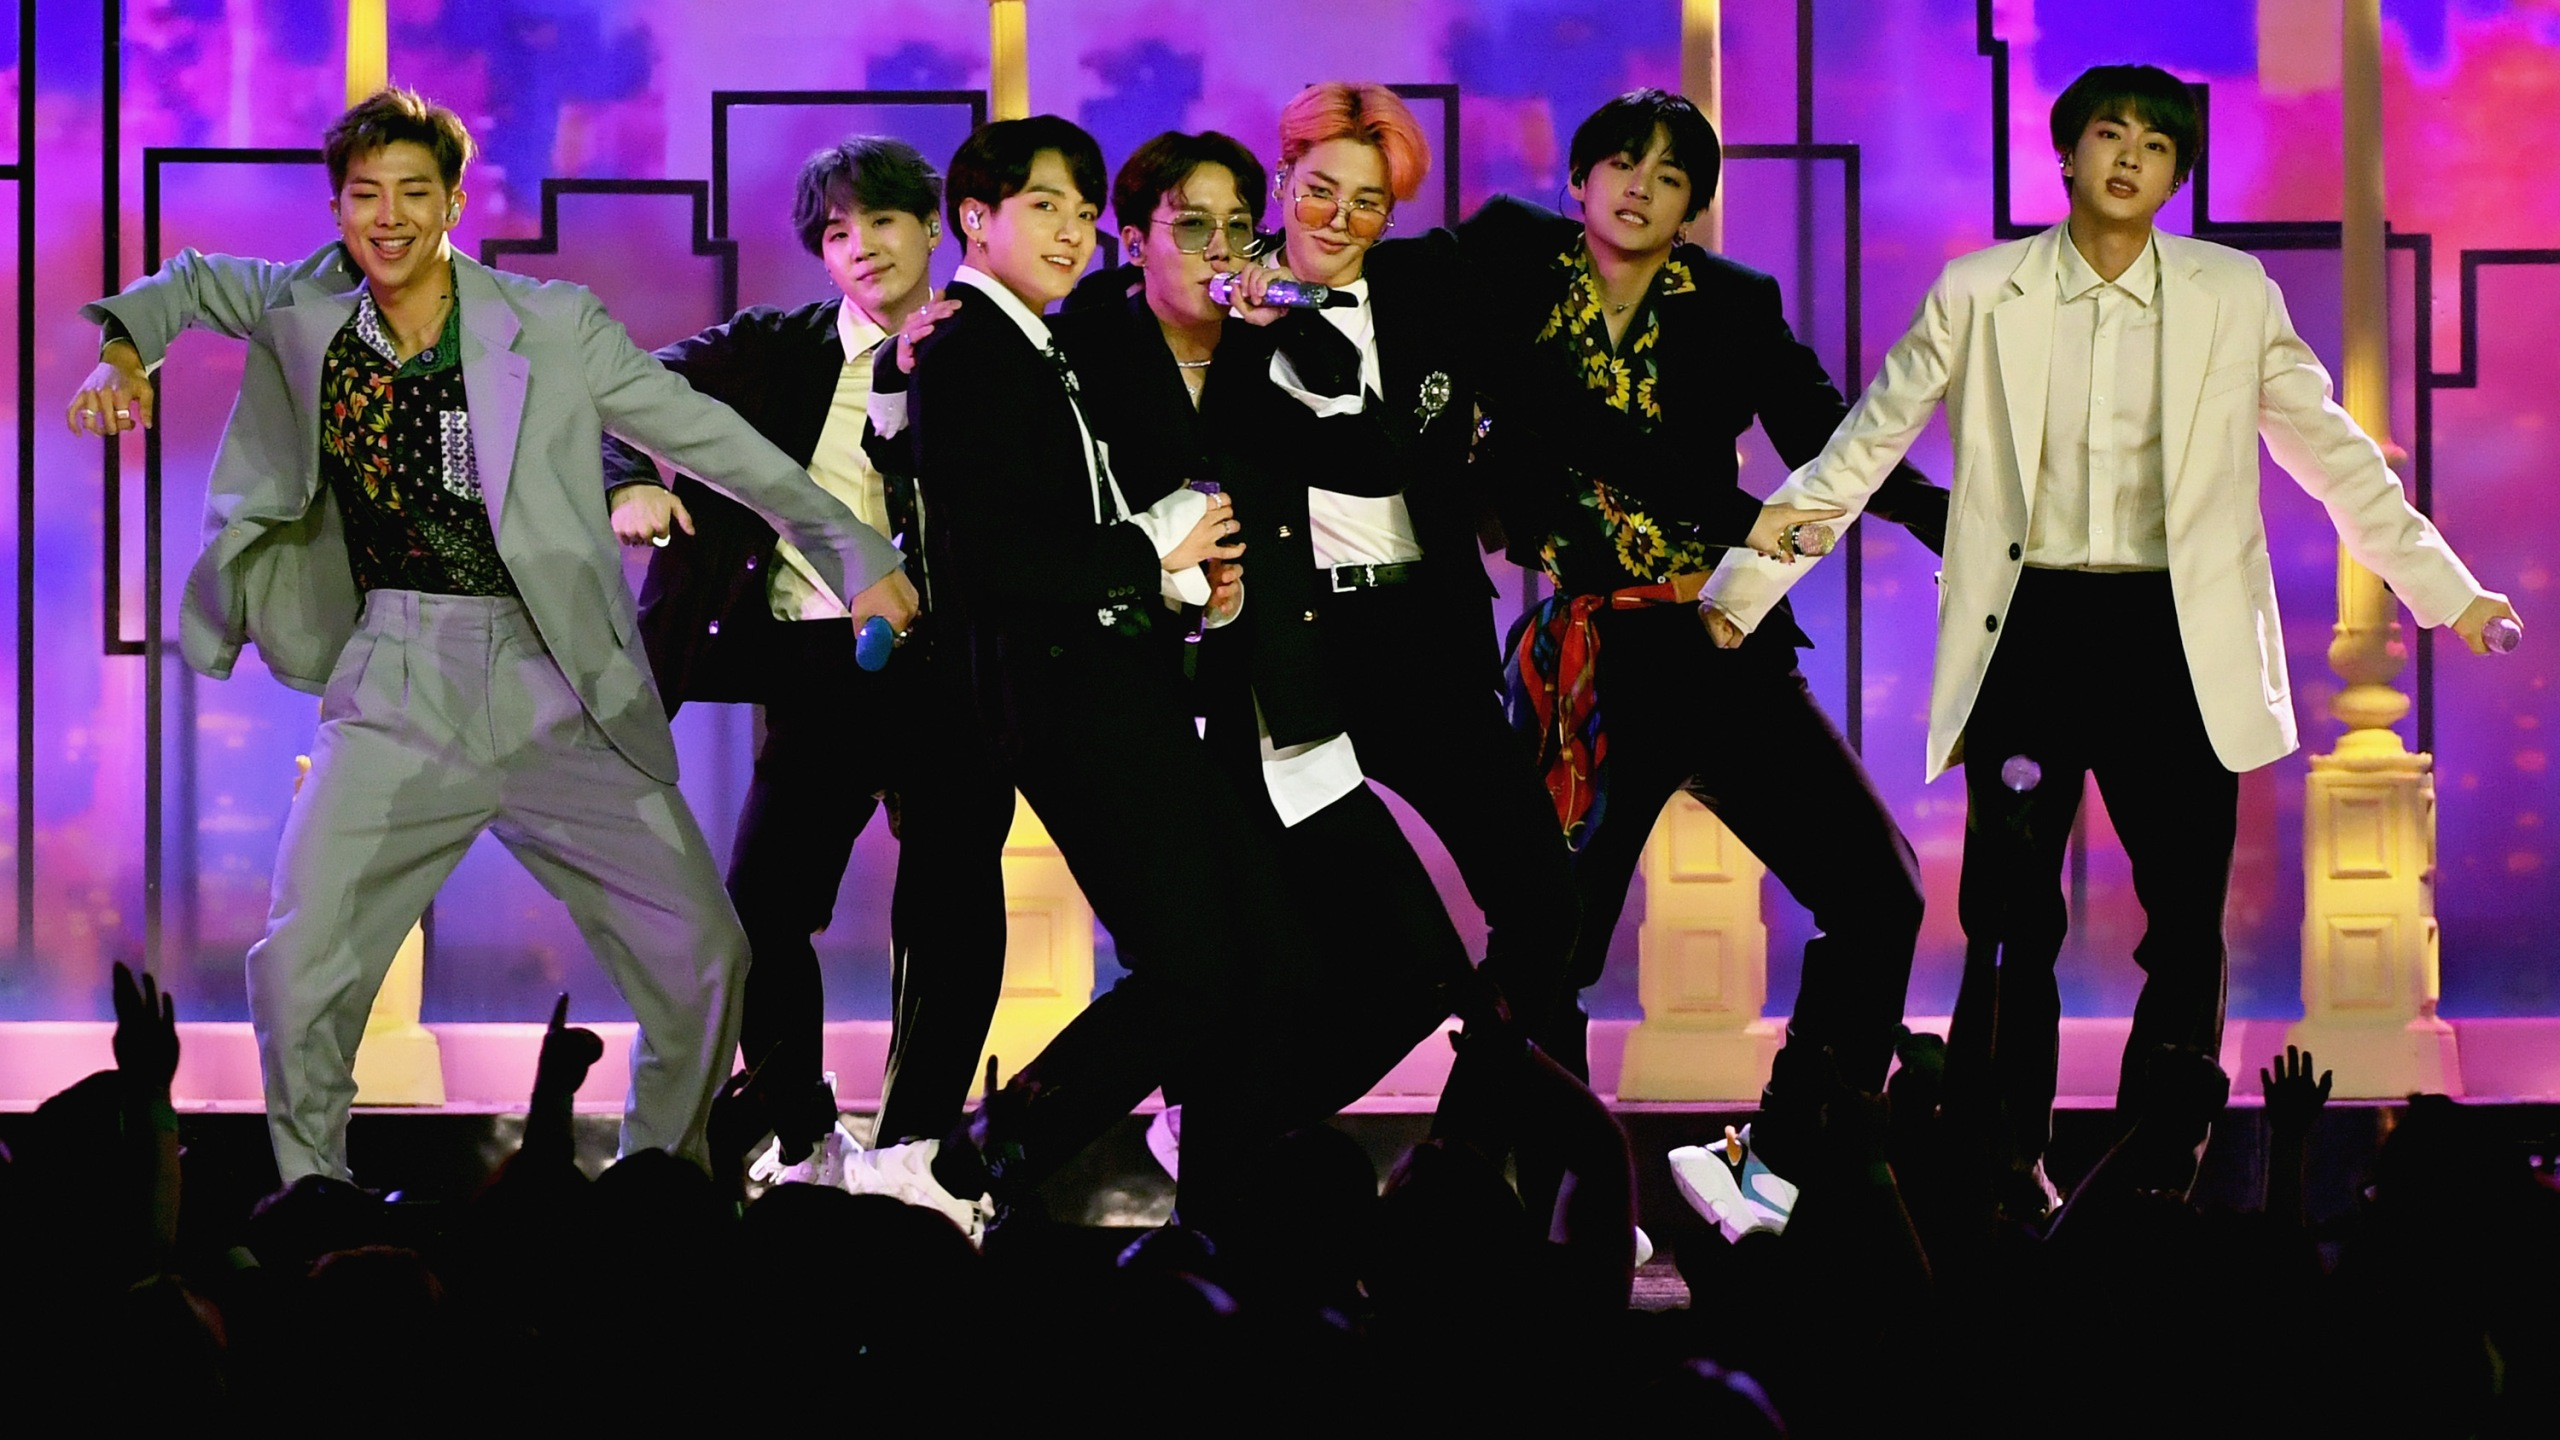 """BTS"" performs onstage during the 2019 Billboard Music Awards at MGM Grand Garden Arena on May 1, 2019, in Las Vegas, Nevada. (Credit: Ethan Miller/Getty Images)"